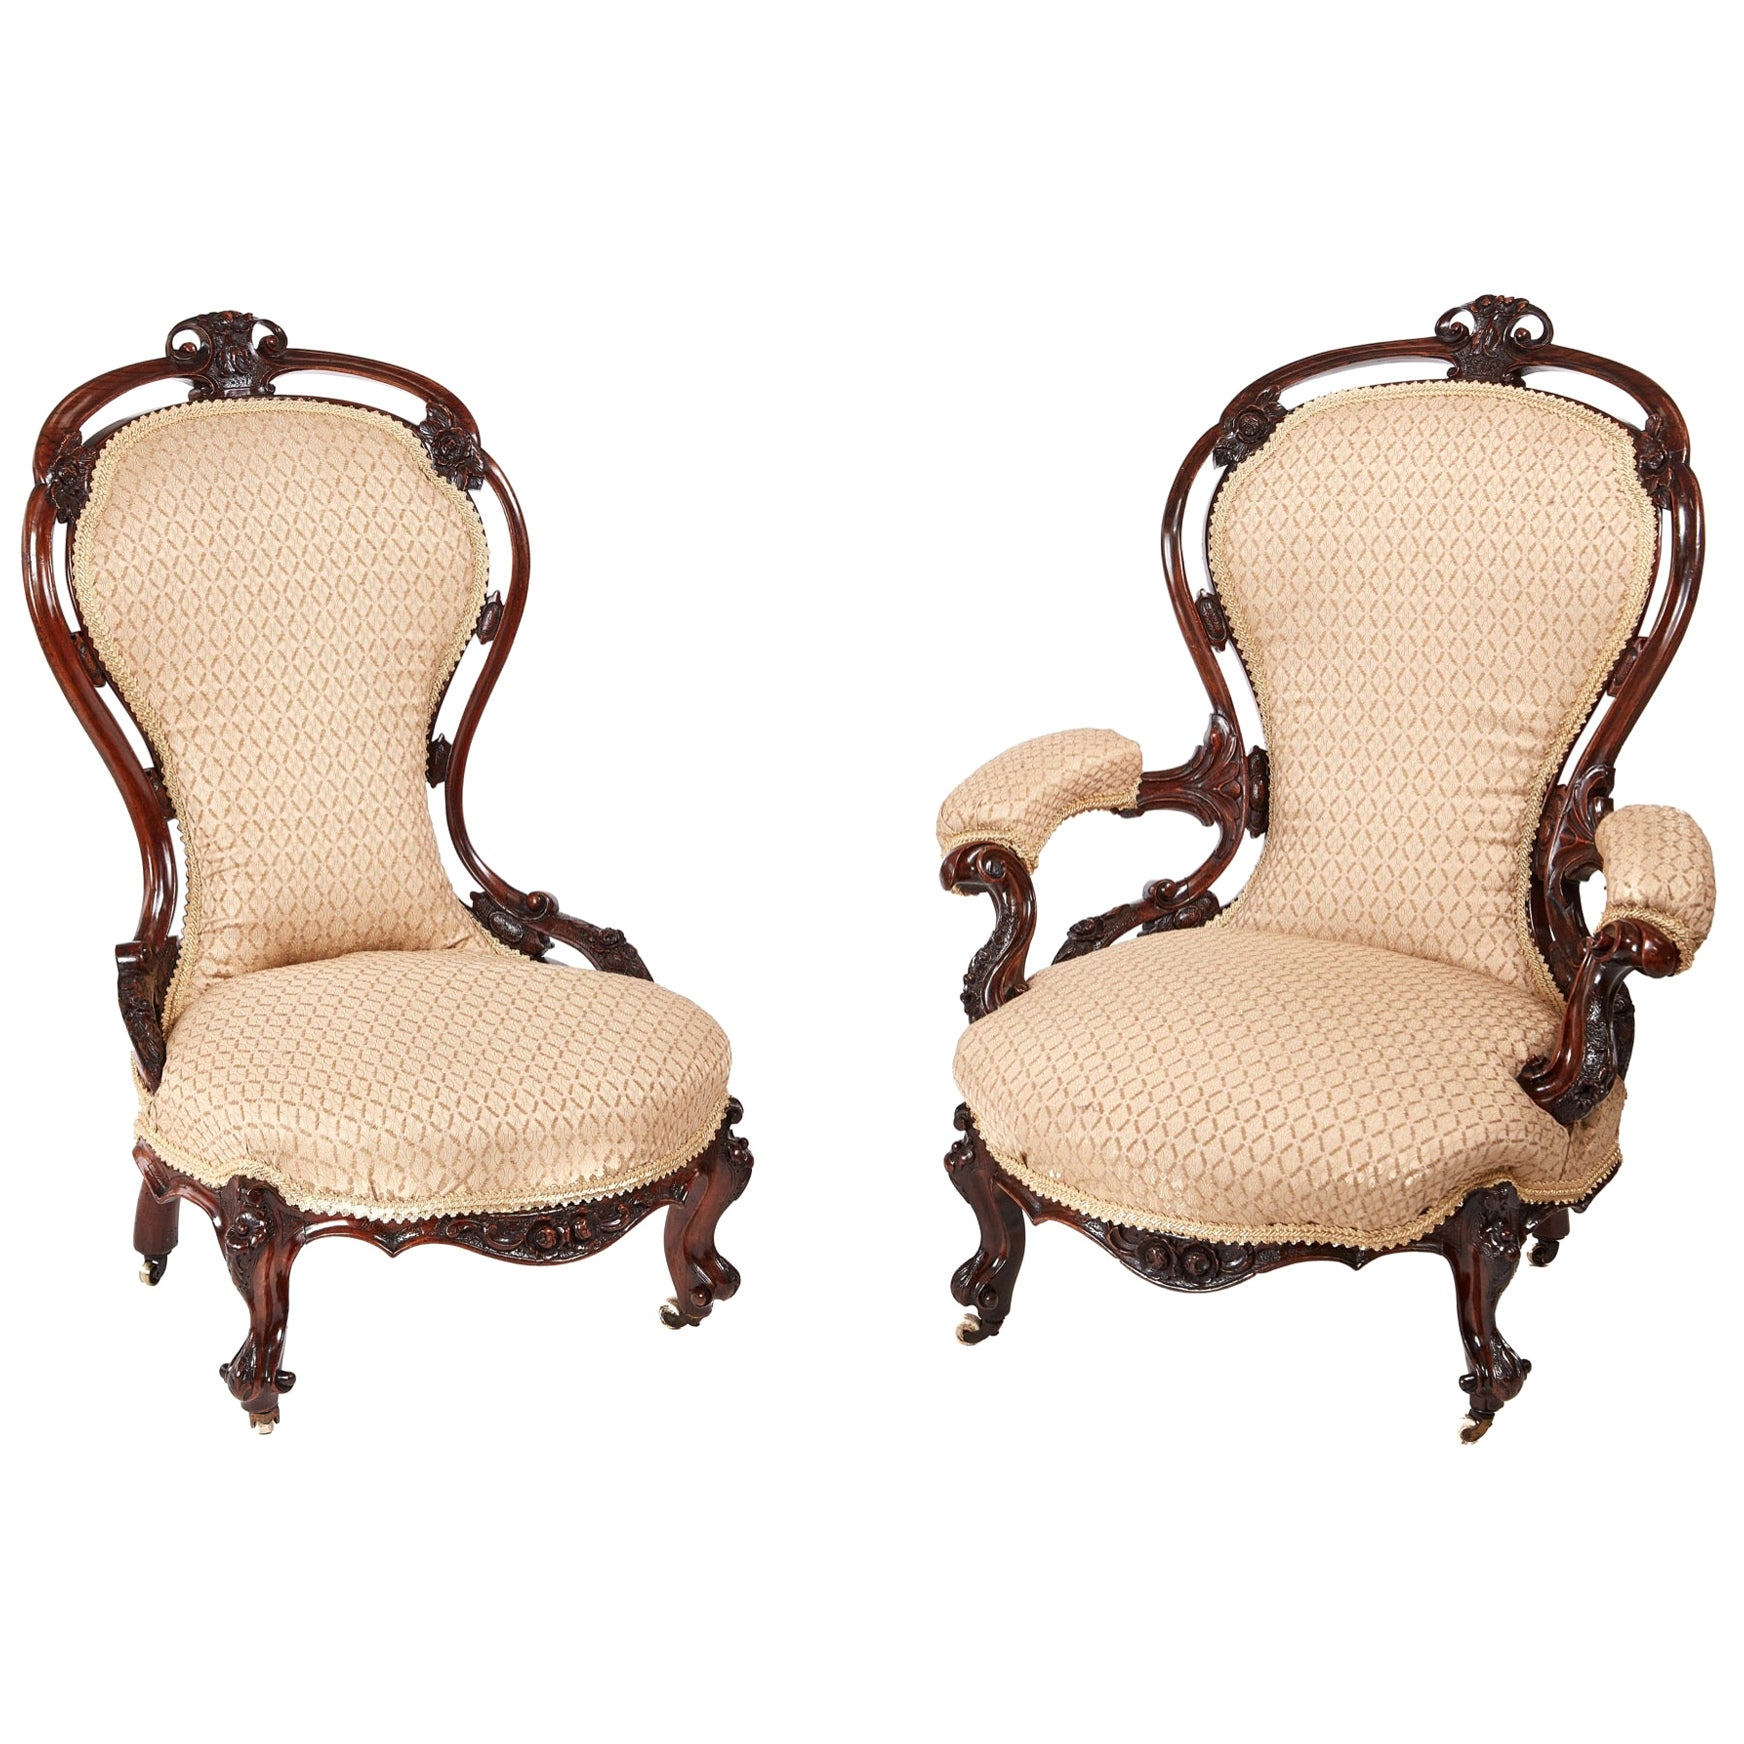 Pair of Victorian Carved Walnut Chairs